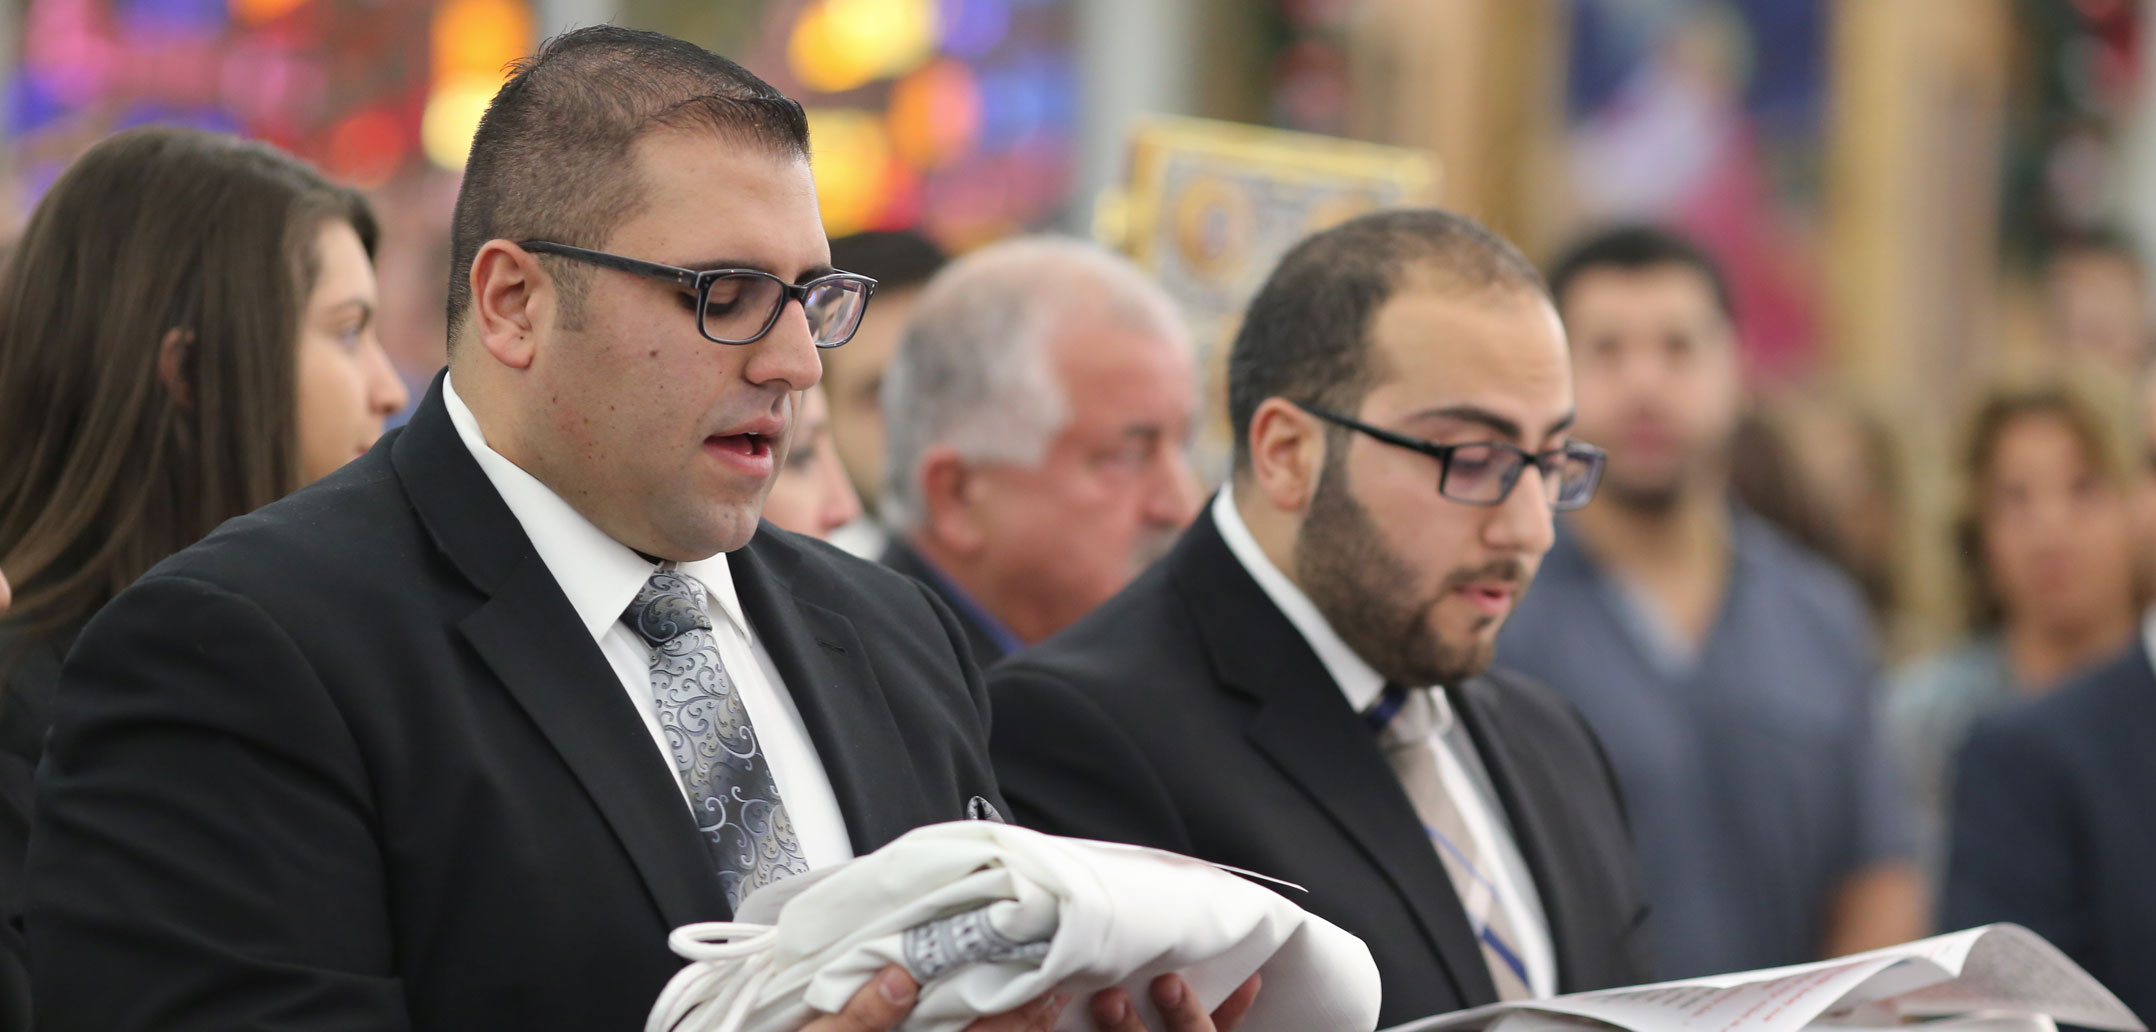 2016/12/Chaldean_Ordinations_December_2016.jpg